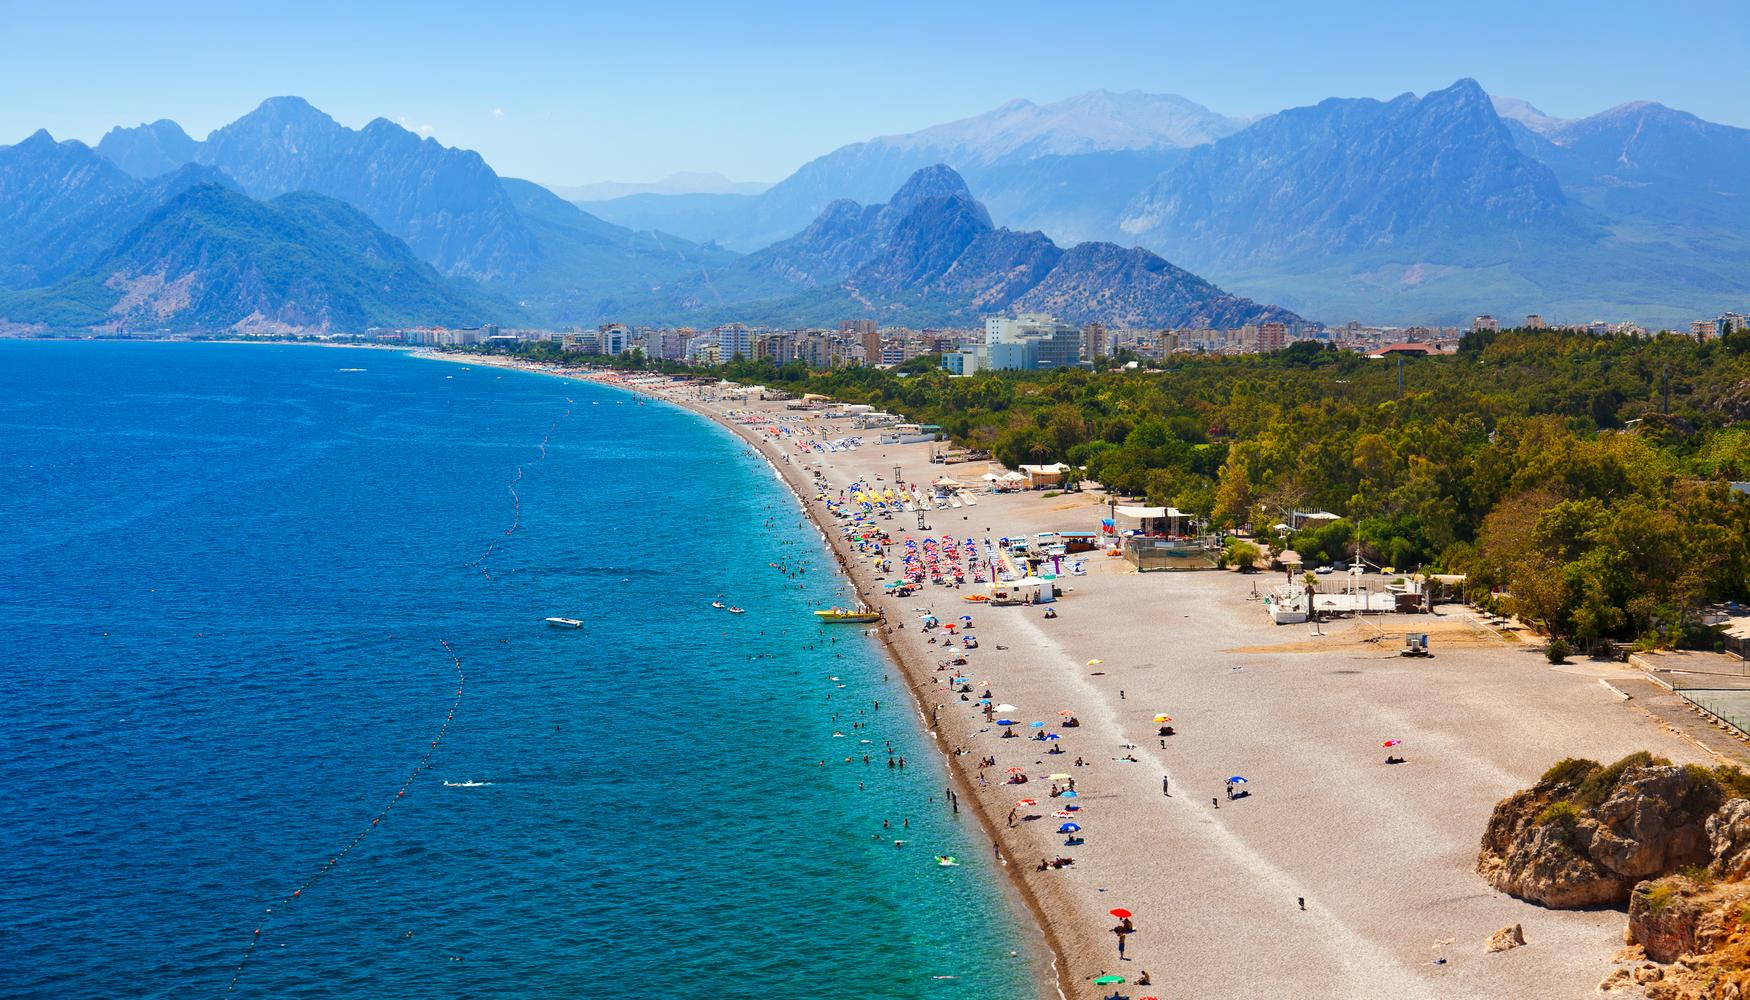 Car rental at Antalya Airport